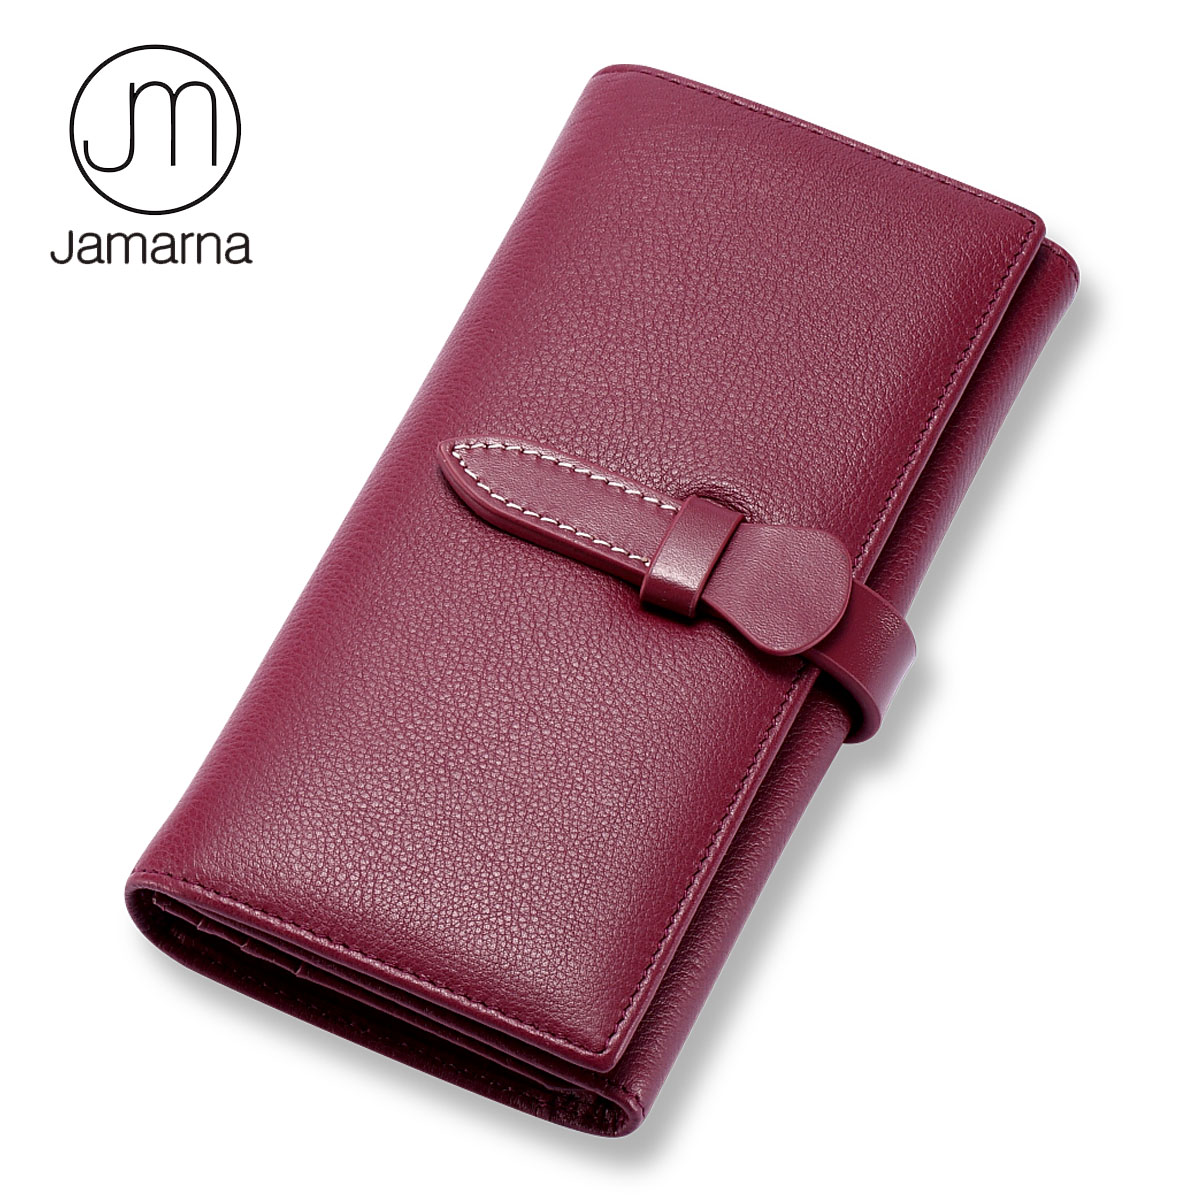 Jamarna Brand Wallet Women Genuine Leather Long Clutch Ladies Purse Card Holder Zipper Packet Women Leather Wallet Female Red jamarna brand wallet female genuine leather long clutch women purse with phone holder women wallets fashion crocodile leather